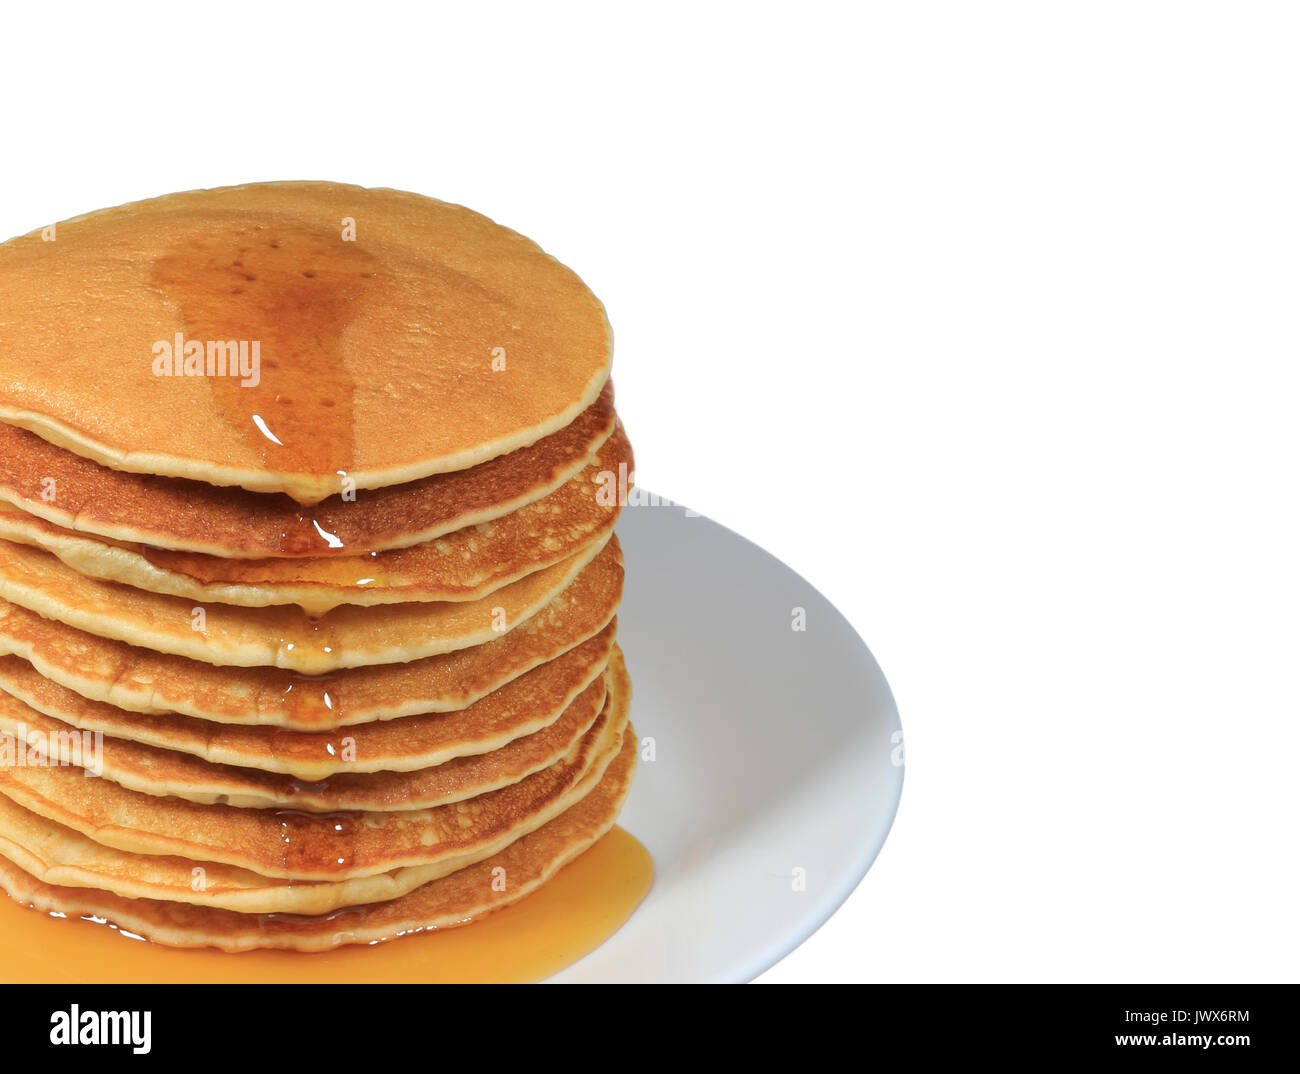 Closed up stack of fresh made pancakes with maple syrup served on white plate, white background with free space for text and design - Stock Image